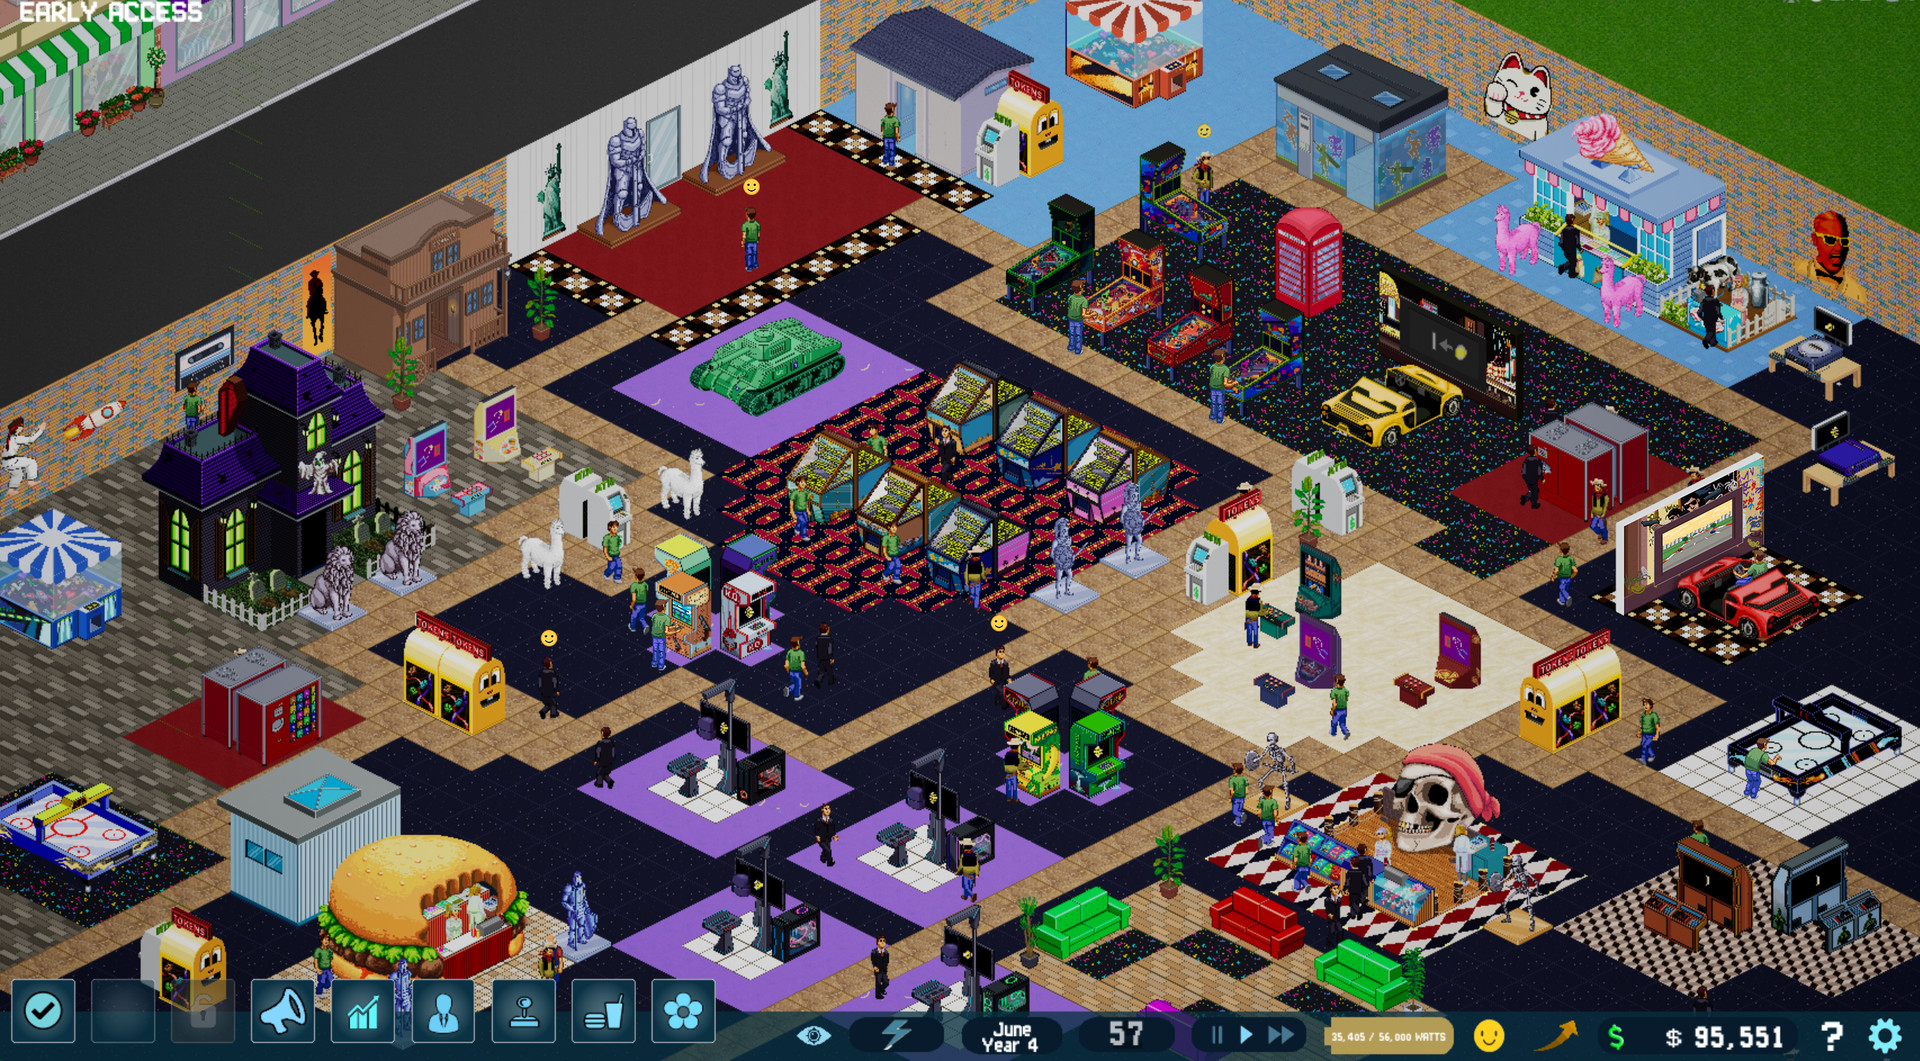 Find the best laptop for Arcade Tycoon